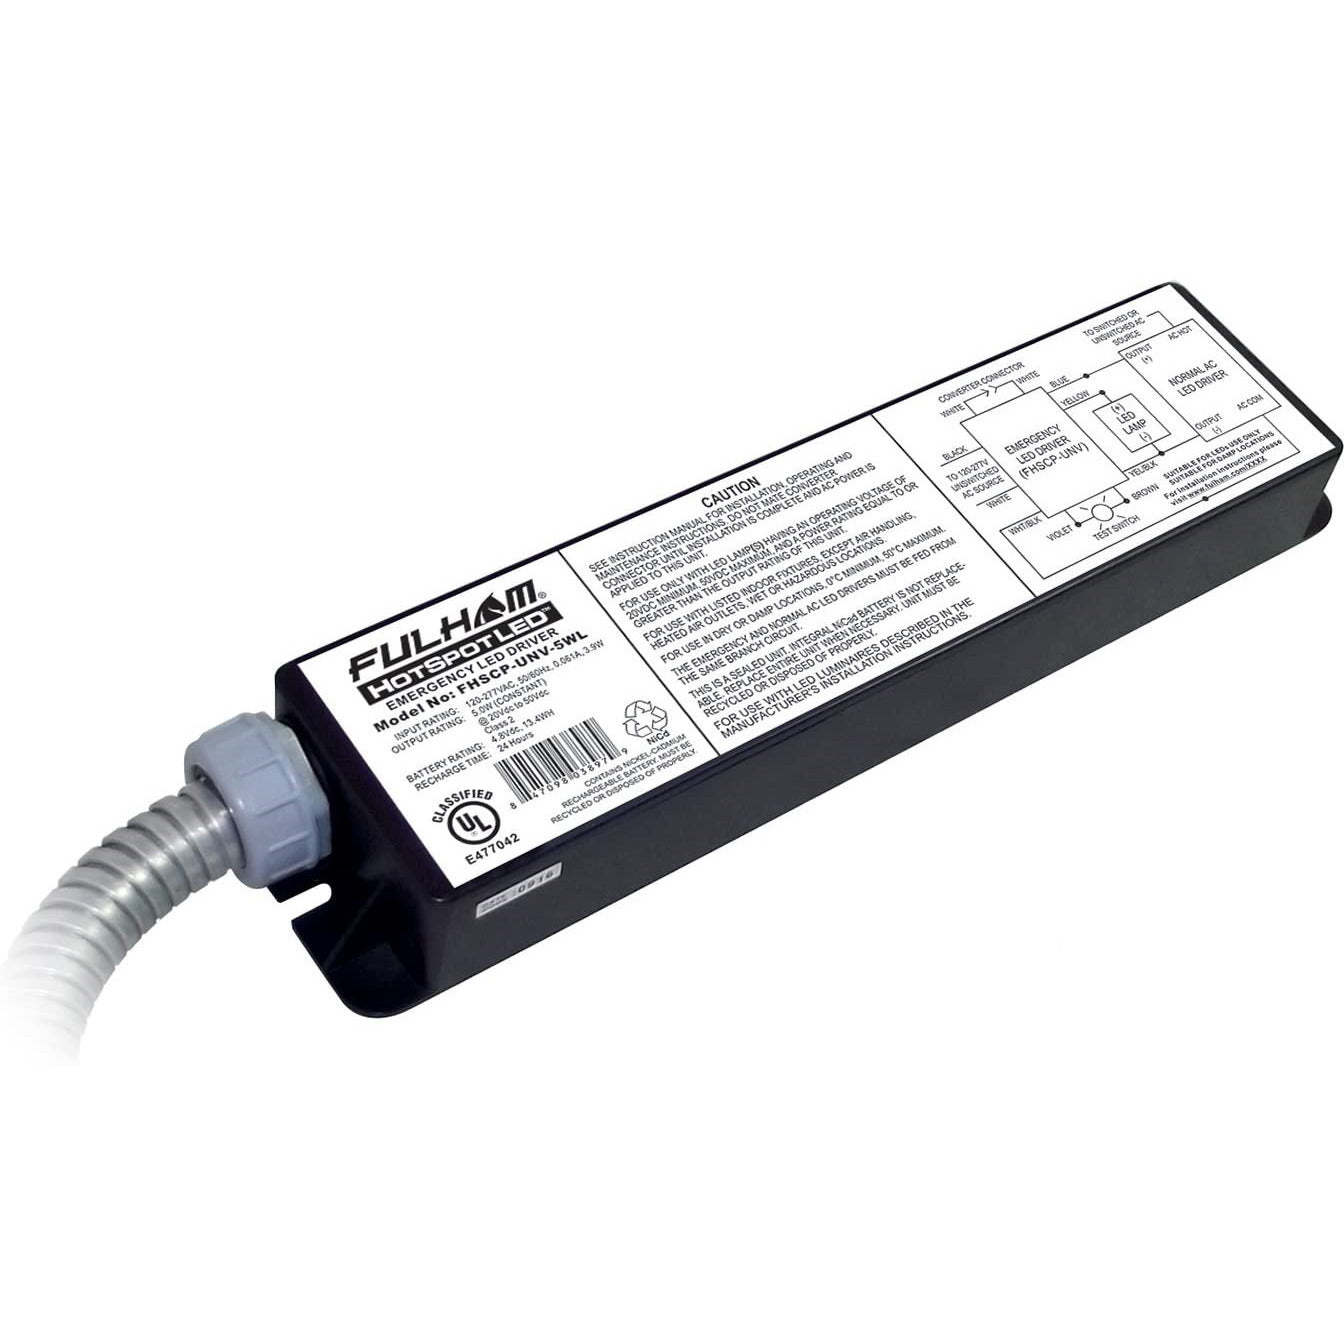 LED EMERGENCY DRIVER / 5W MAX - CommerciaLight Distributors